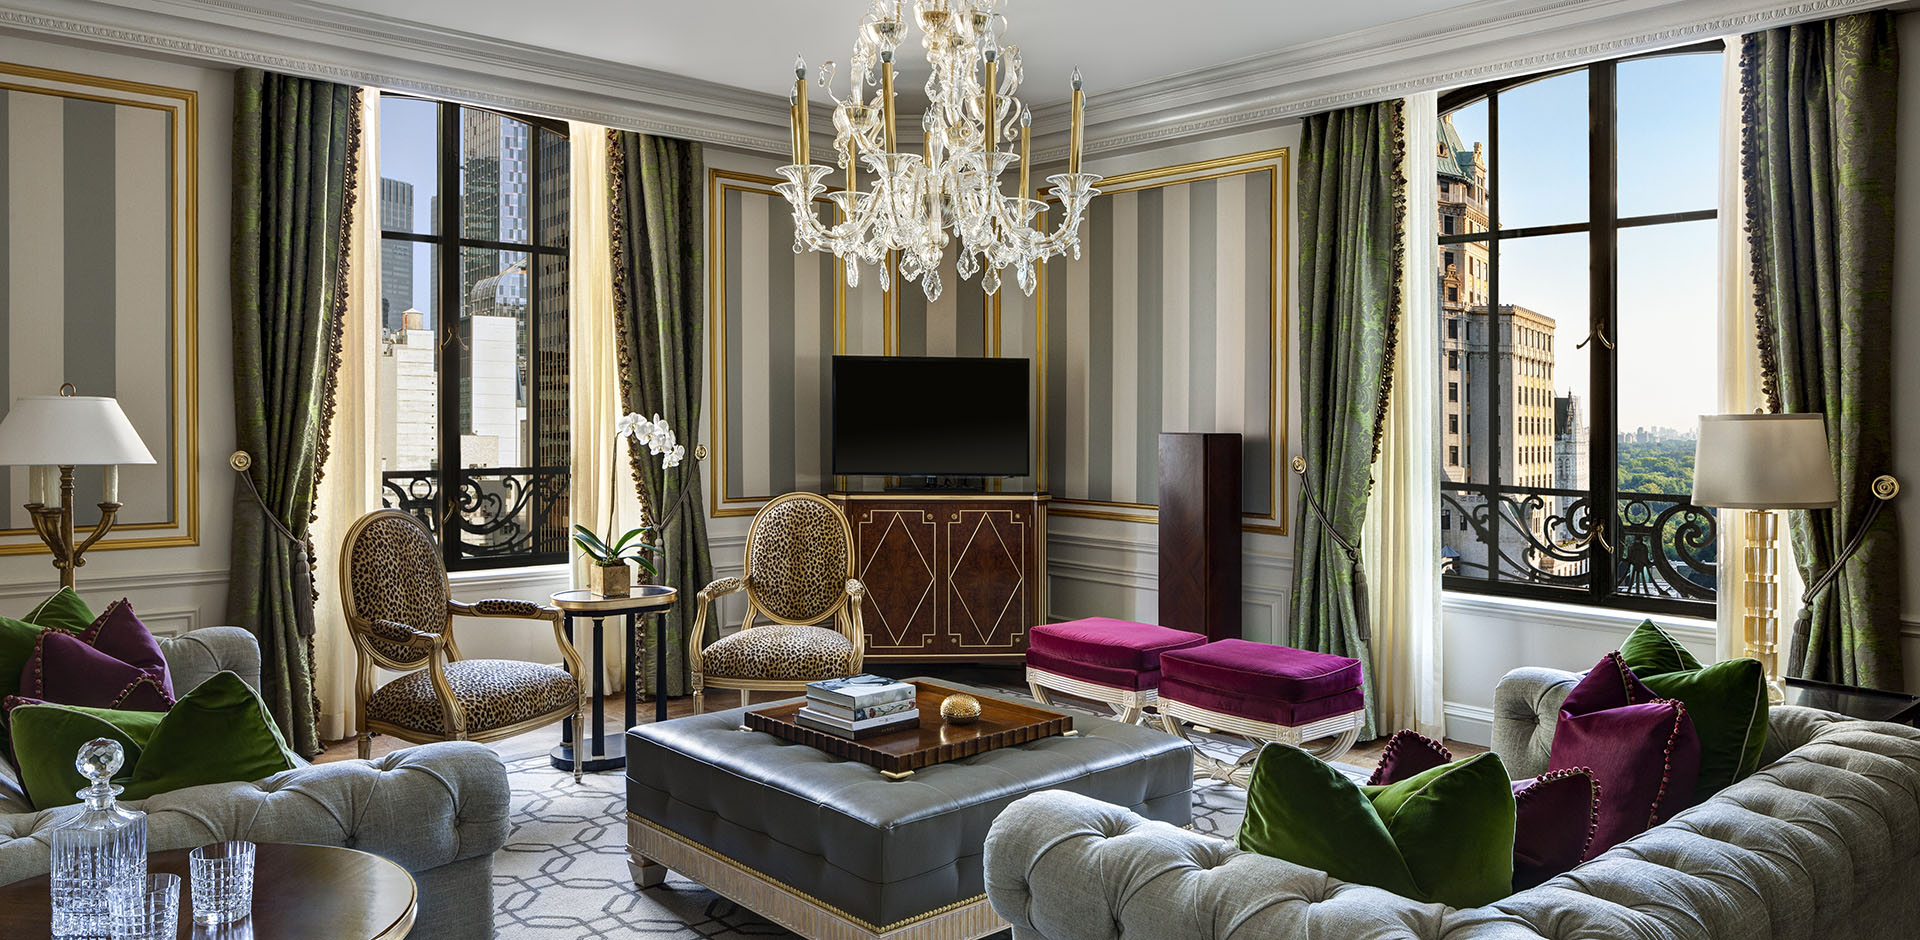 St Regis, New York - Royal Living Room